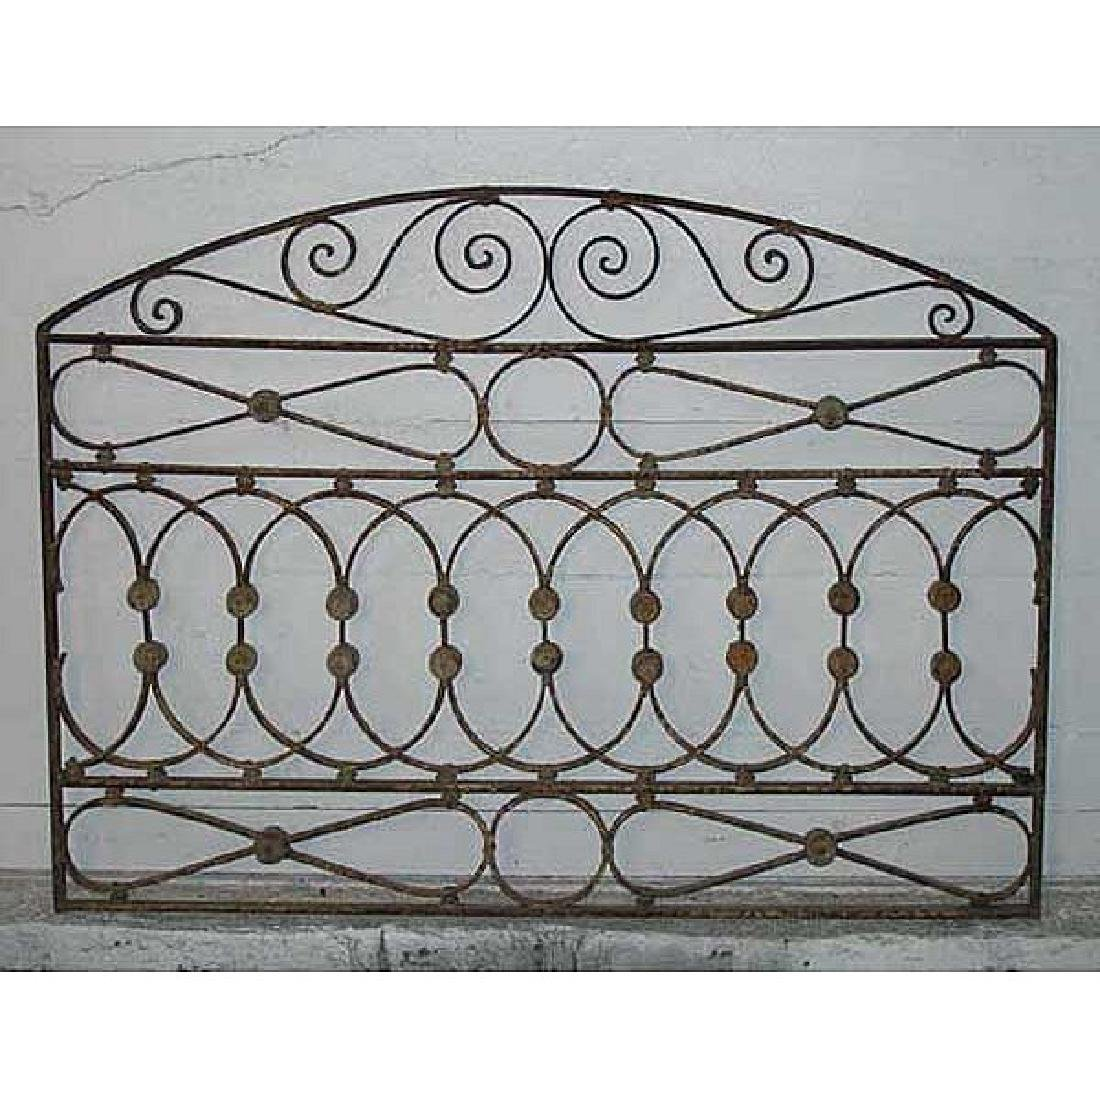 French Wrought Iron & Zinc Arched Transom Grille